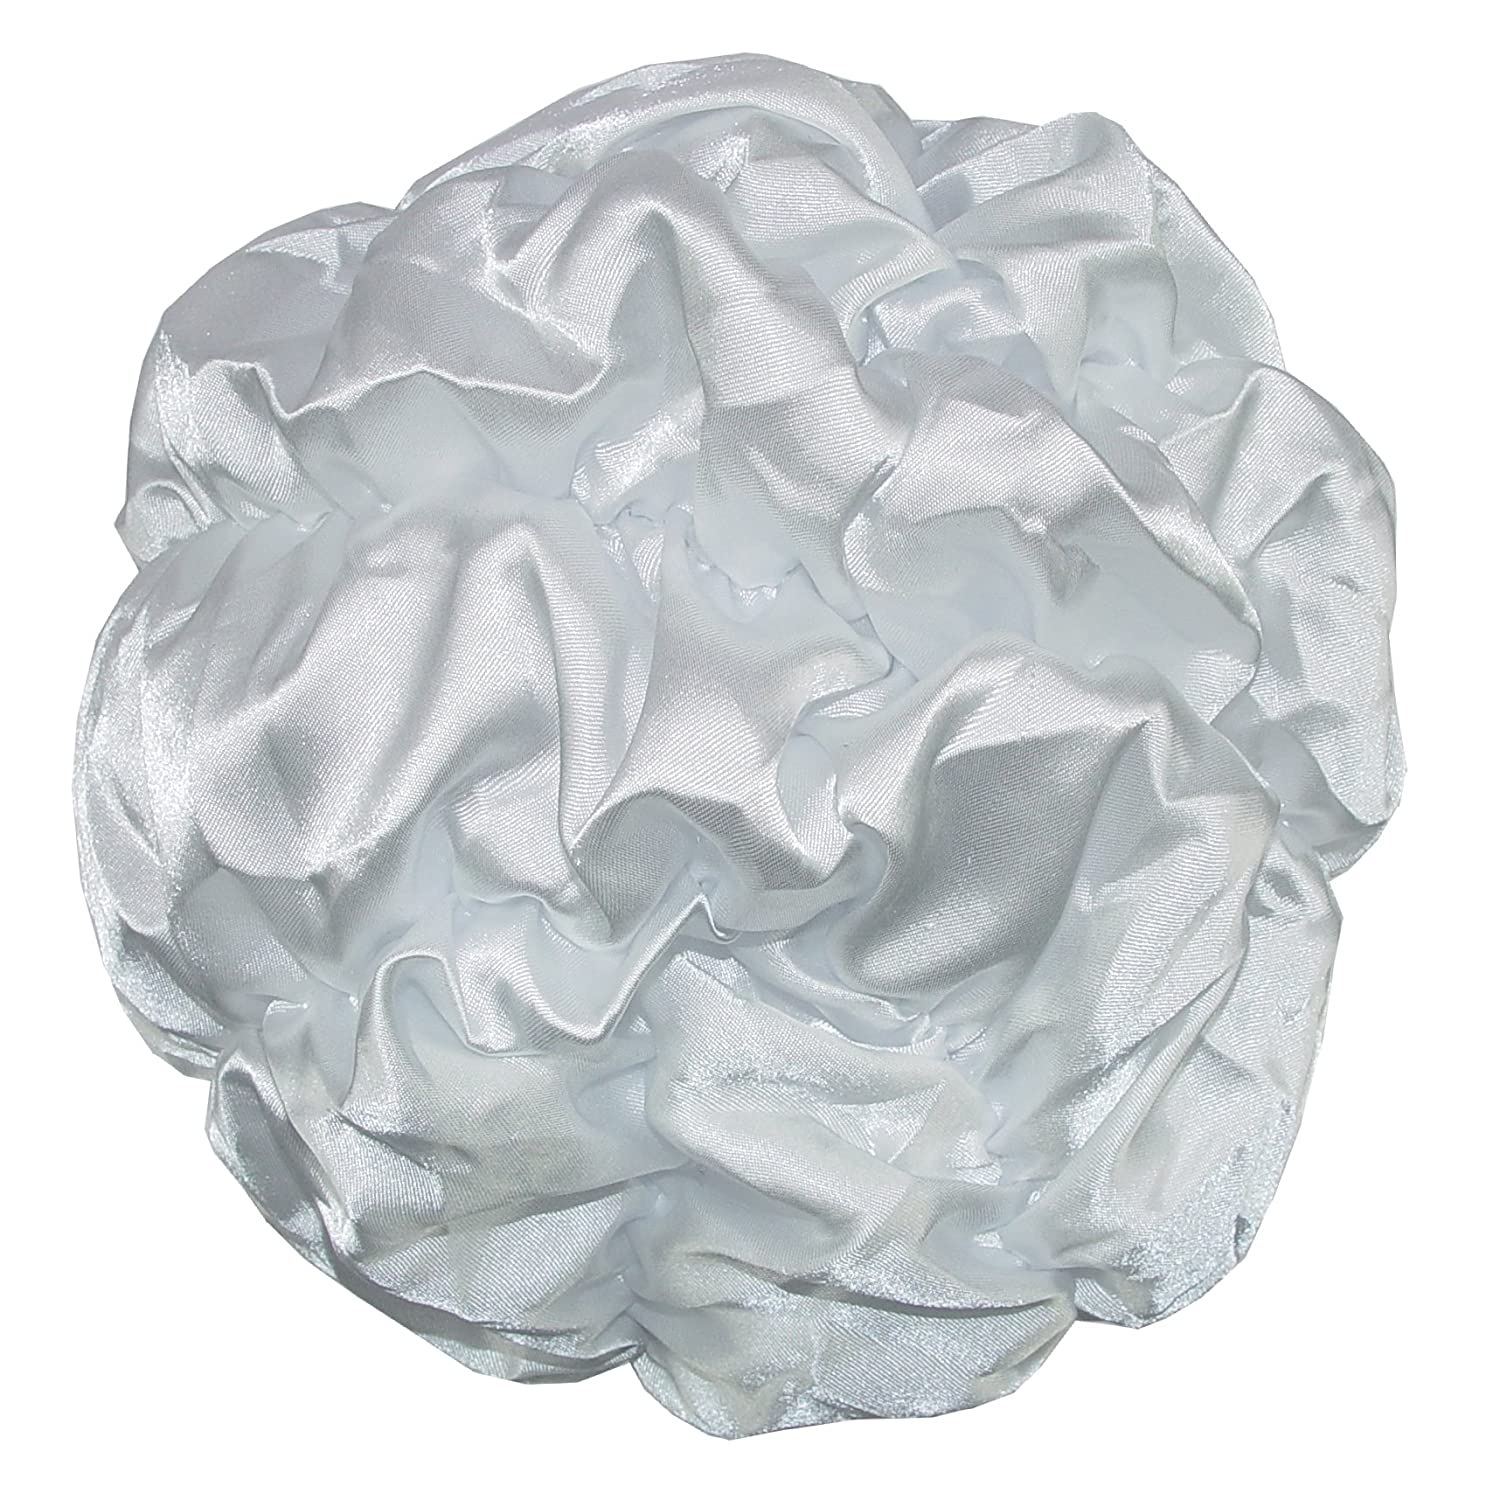 Fantasia Shower Cap Number 5006